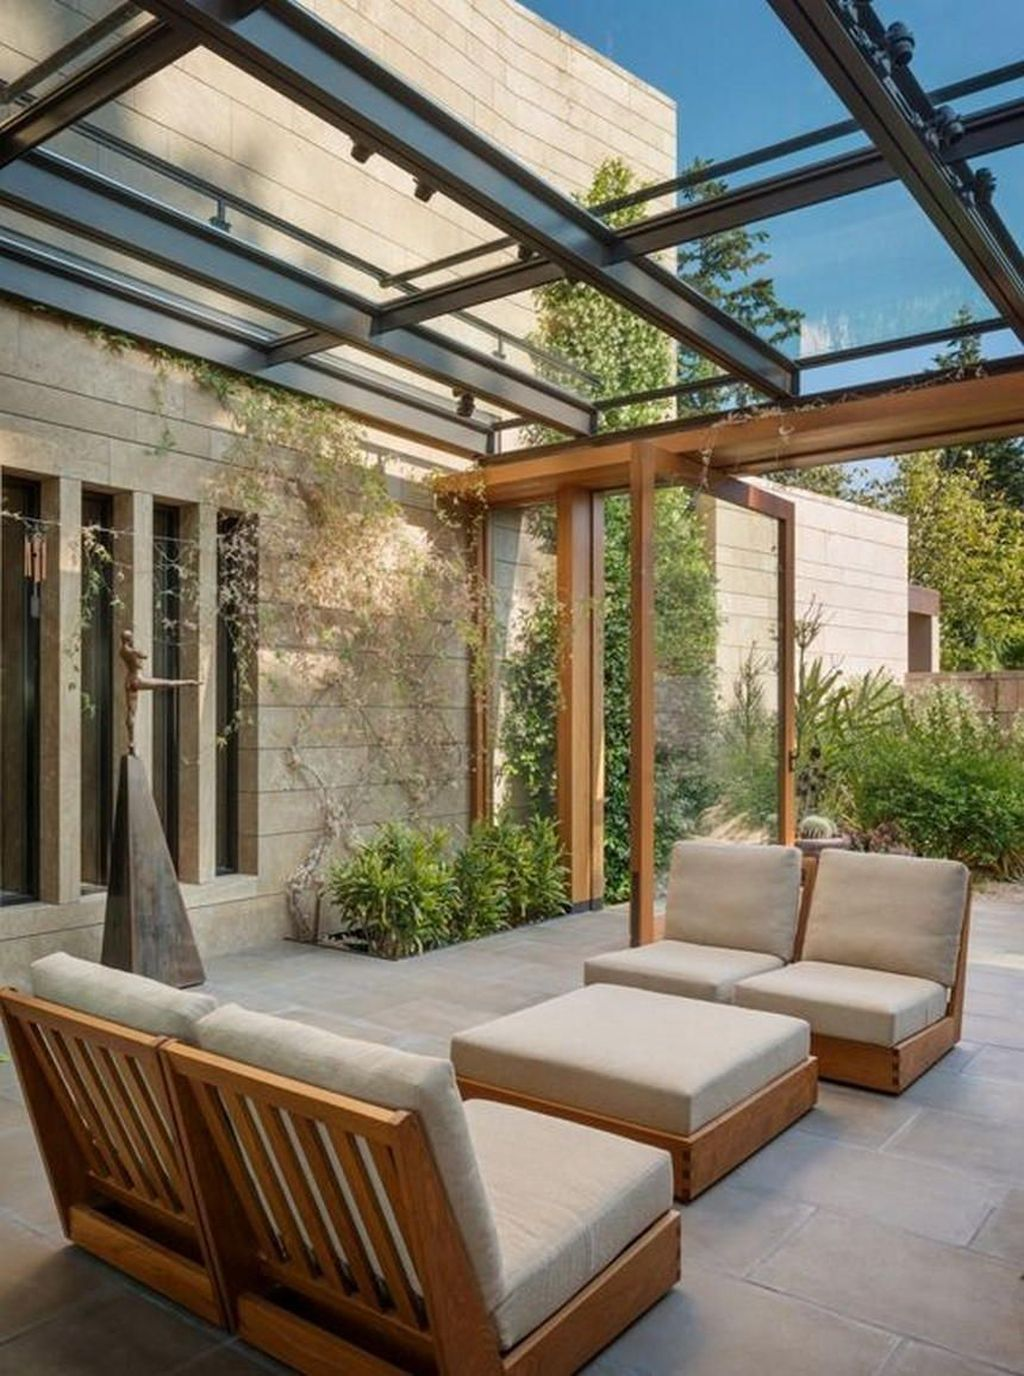 Admirable Sunroom Design Ideas You Must Have 30